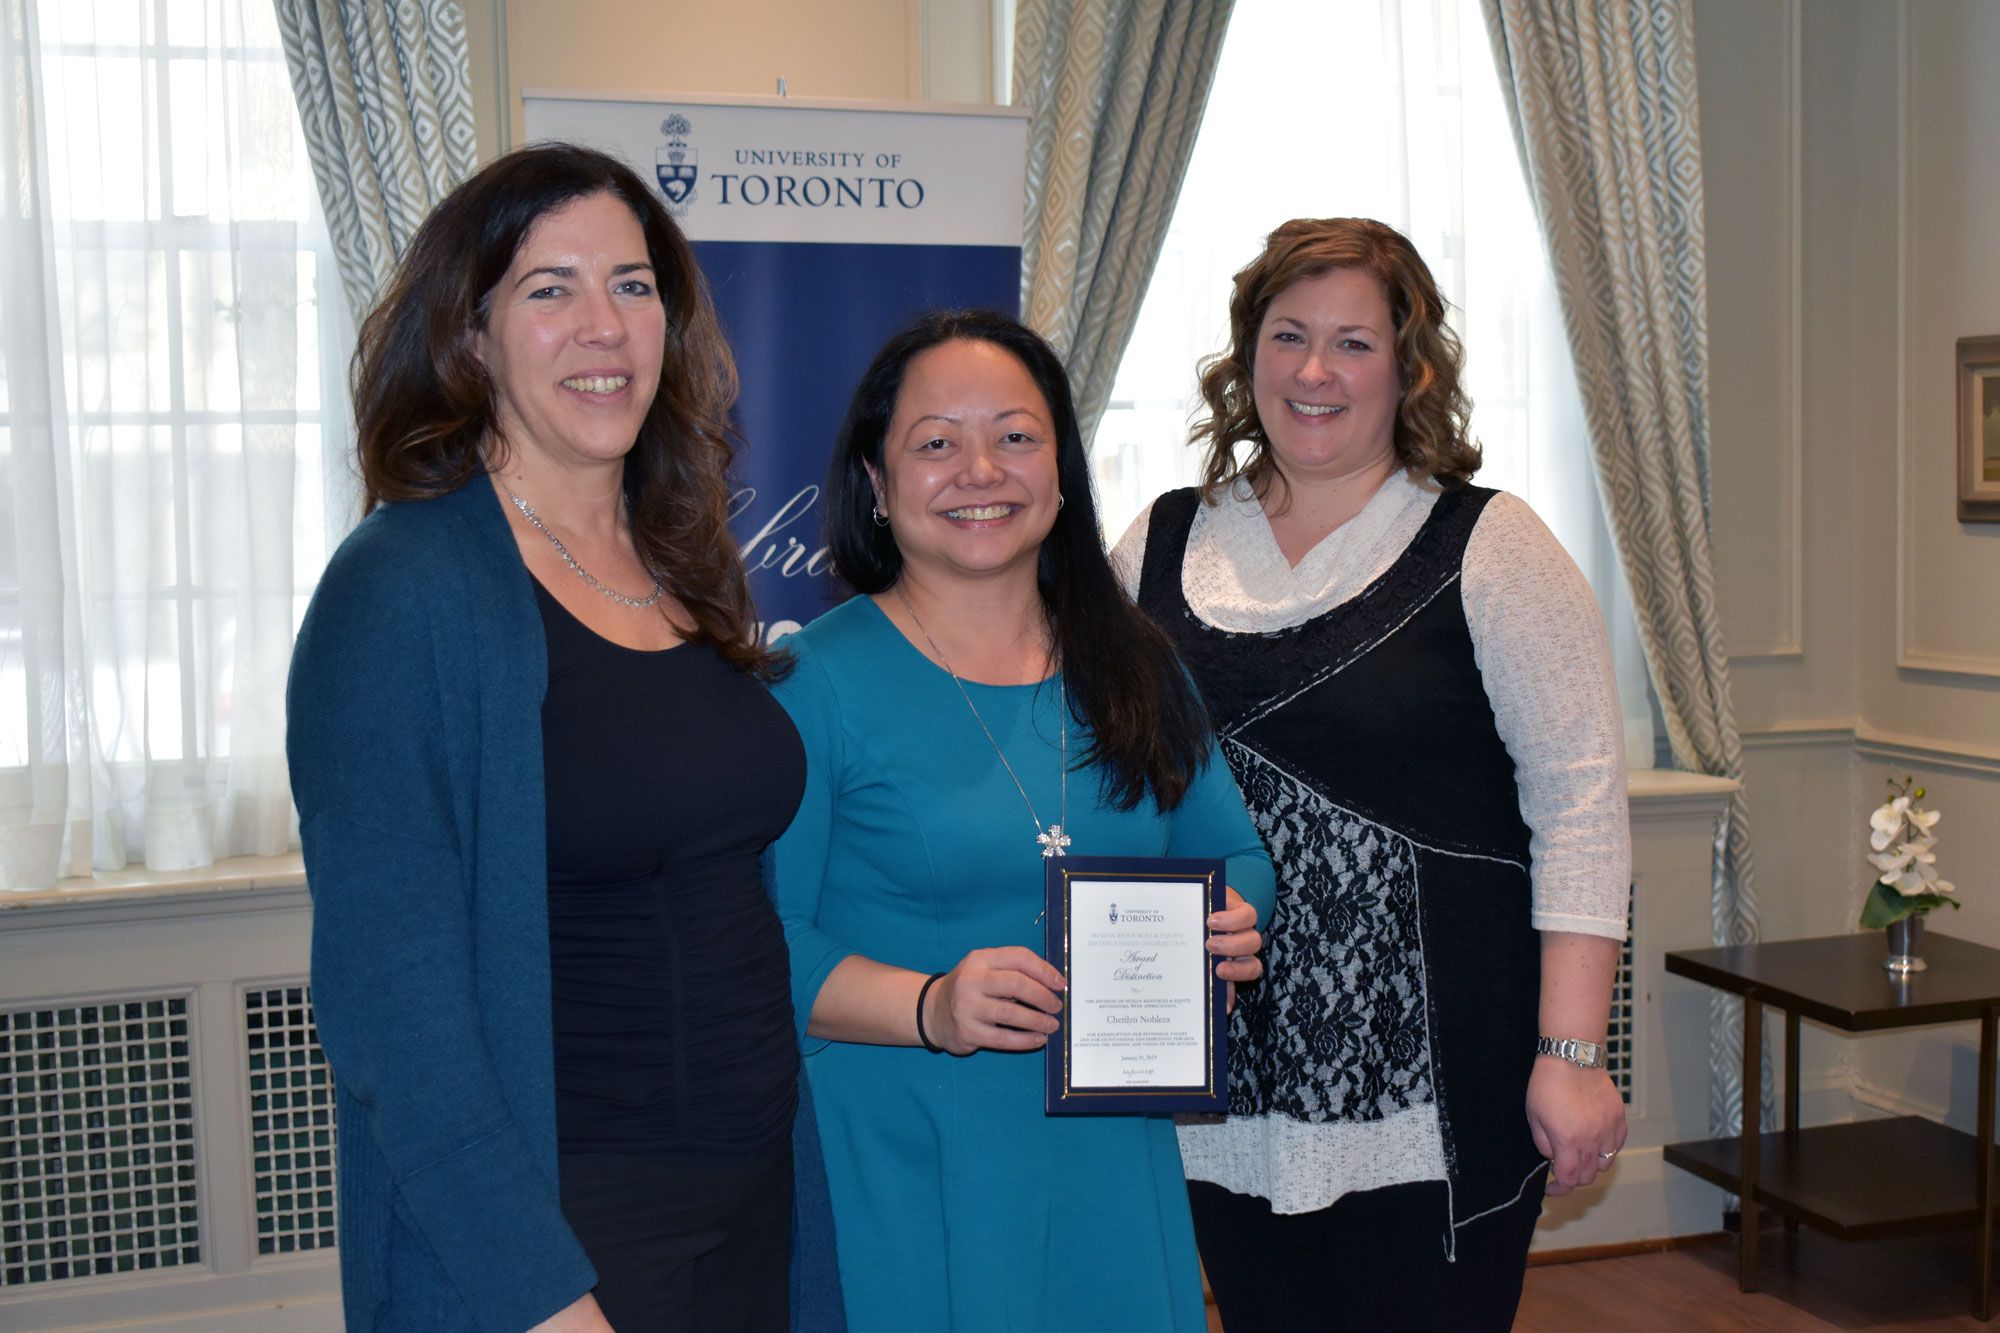 Cherilyn Nobleza poses with their HRE award of distinction with VP Kelly Hannah-Moffat and CHRO Erin Jackson